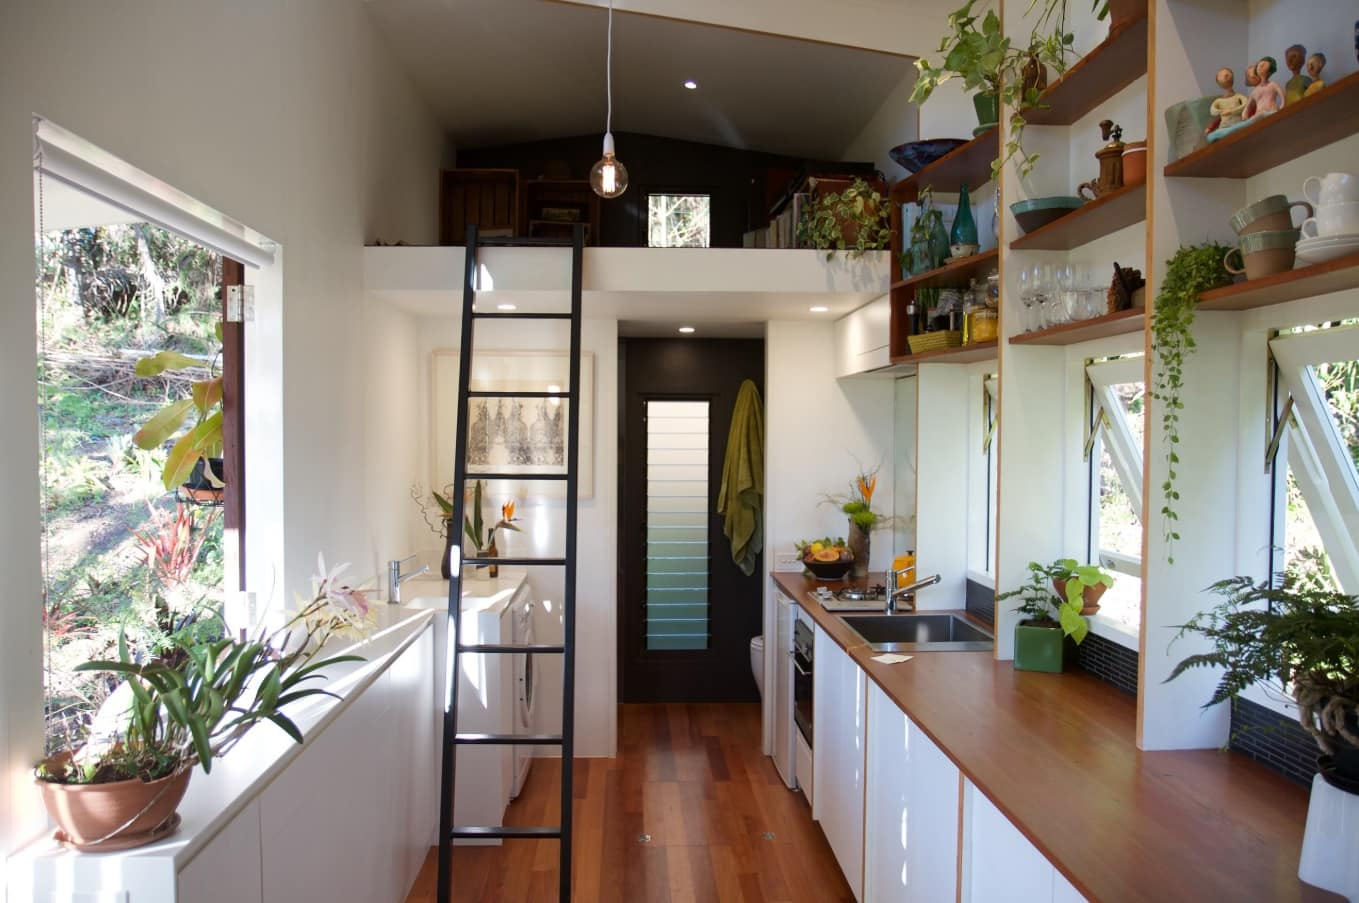 Tiny Home Interiors that Can Inspire Making Your Space more Functional. A whole common space concept of the small house